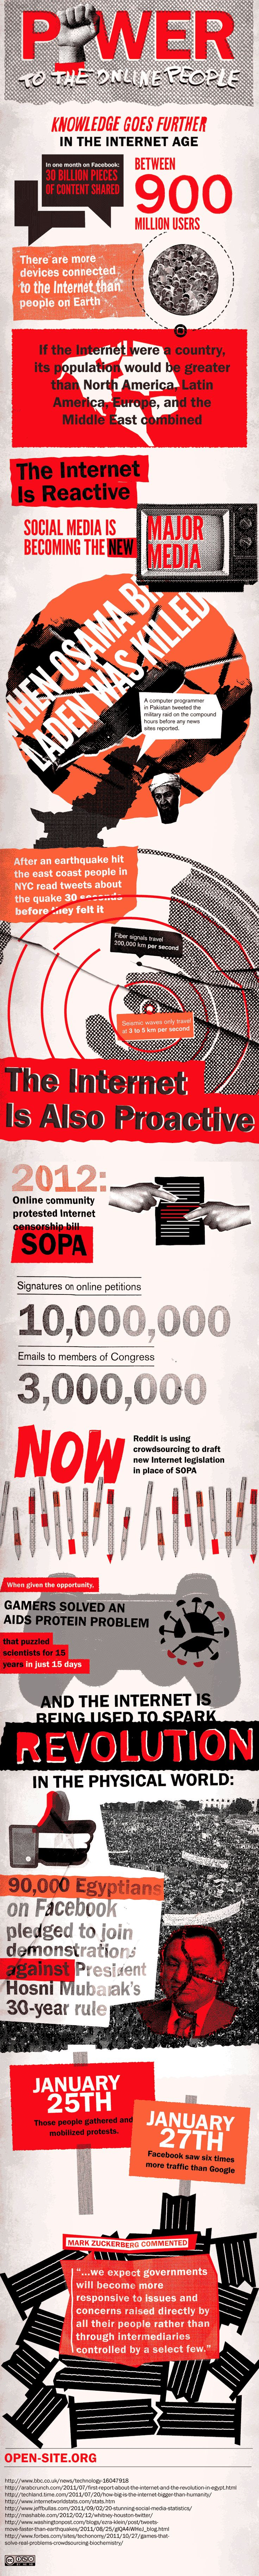 Infographic: Power To The Online People